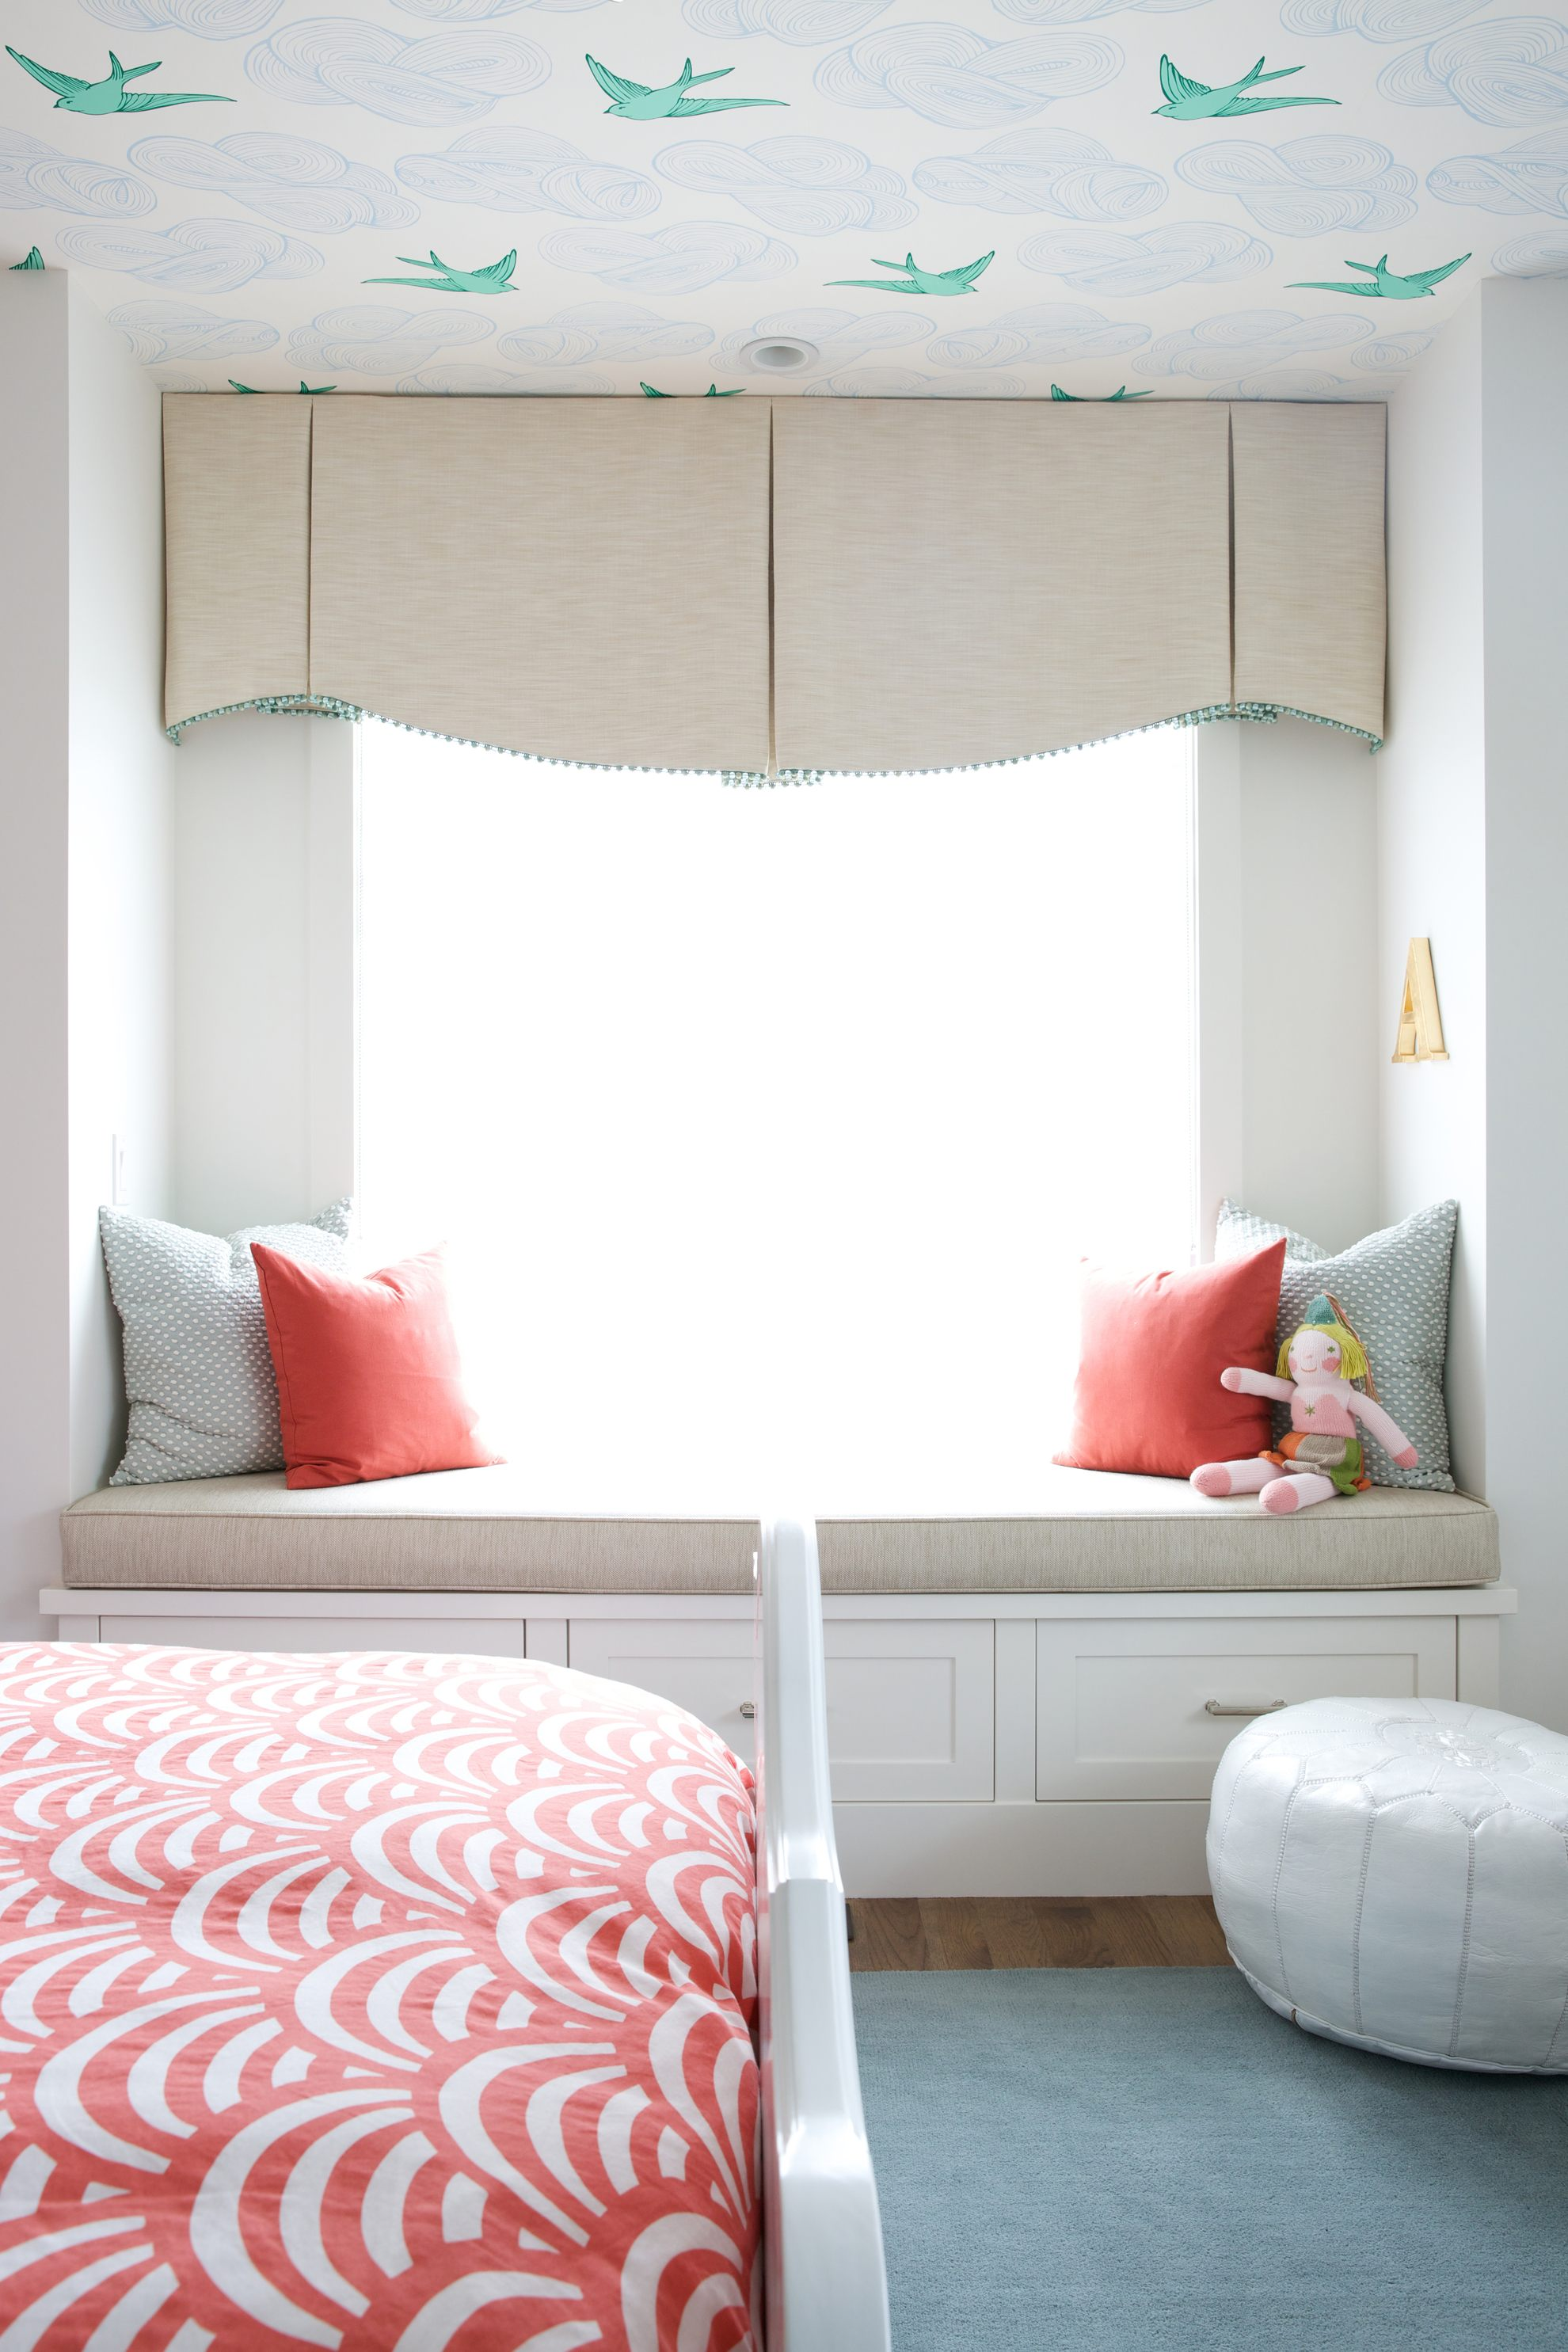 Bedroom by Reena Sotropa In House Design Group featuring Daydream wallpaper in Green by Julia Rothman for Hygge & West